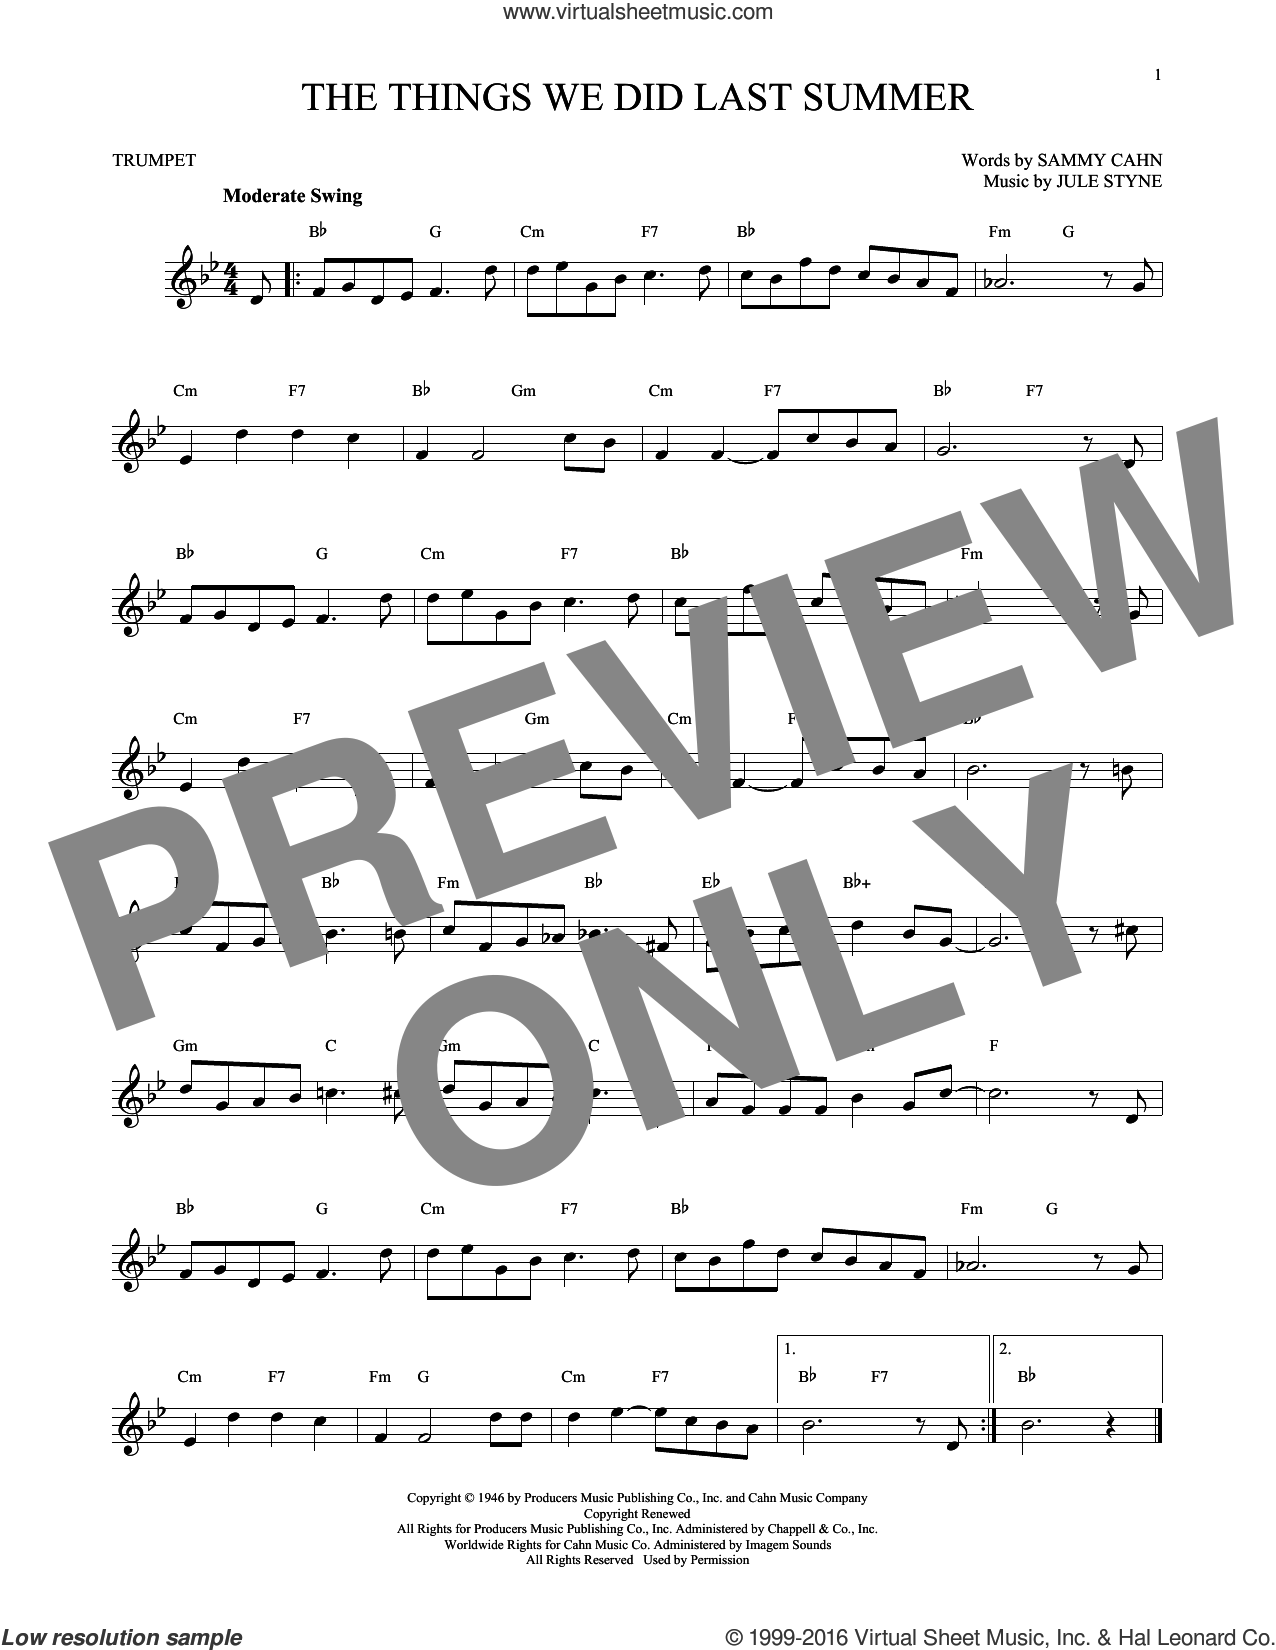 The Things We Did Last Summer sheet music for trumpet solo by Sammy Cahn and Jule Styne, intermediate skill level